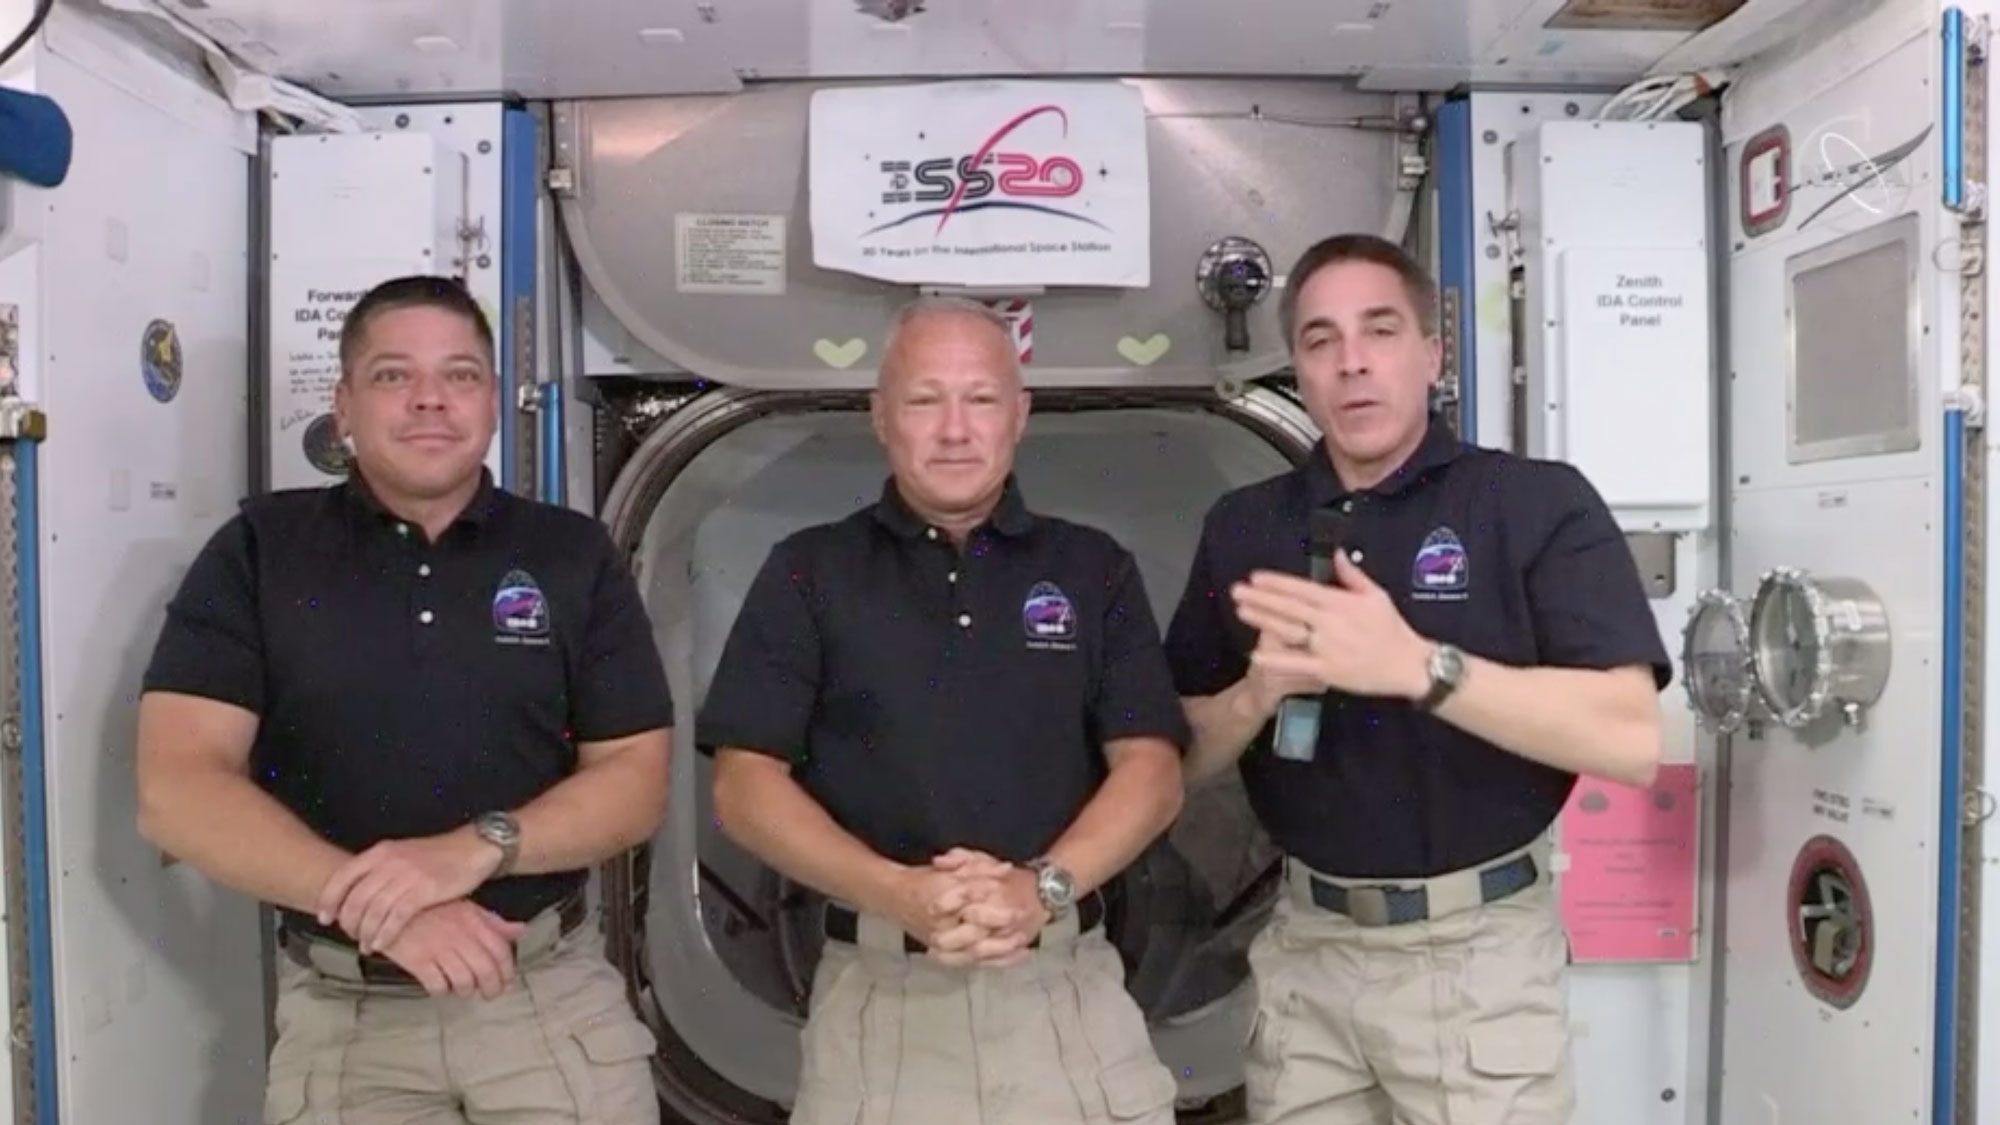 NASA astronauts 'capture the flag' on the space station and look ahead after historic launch